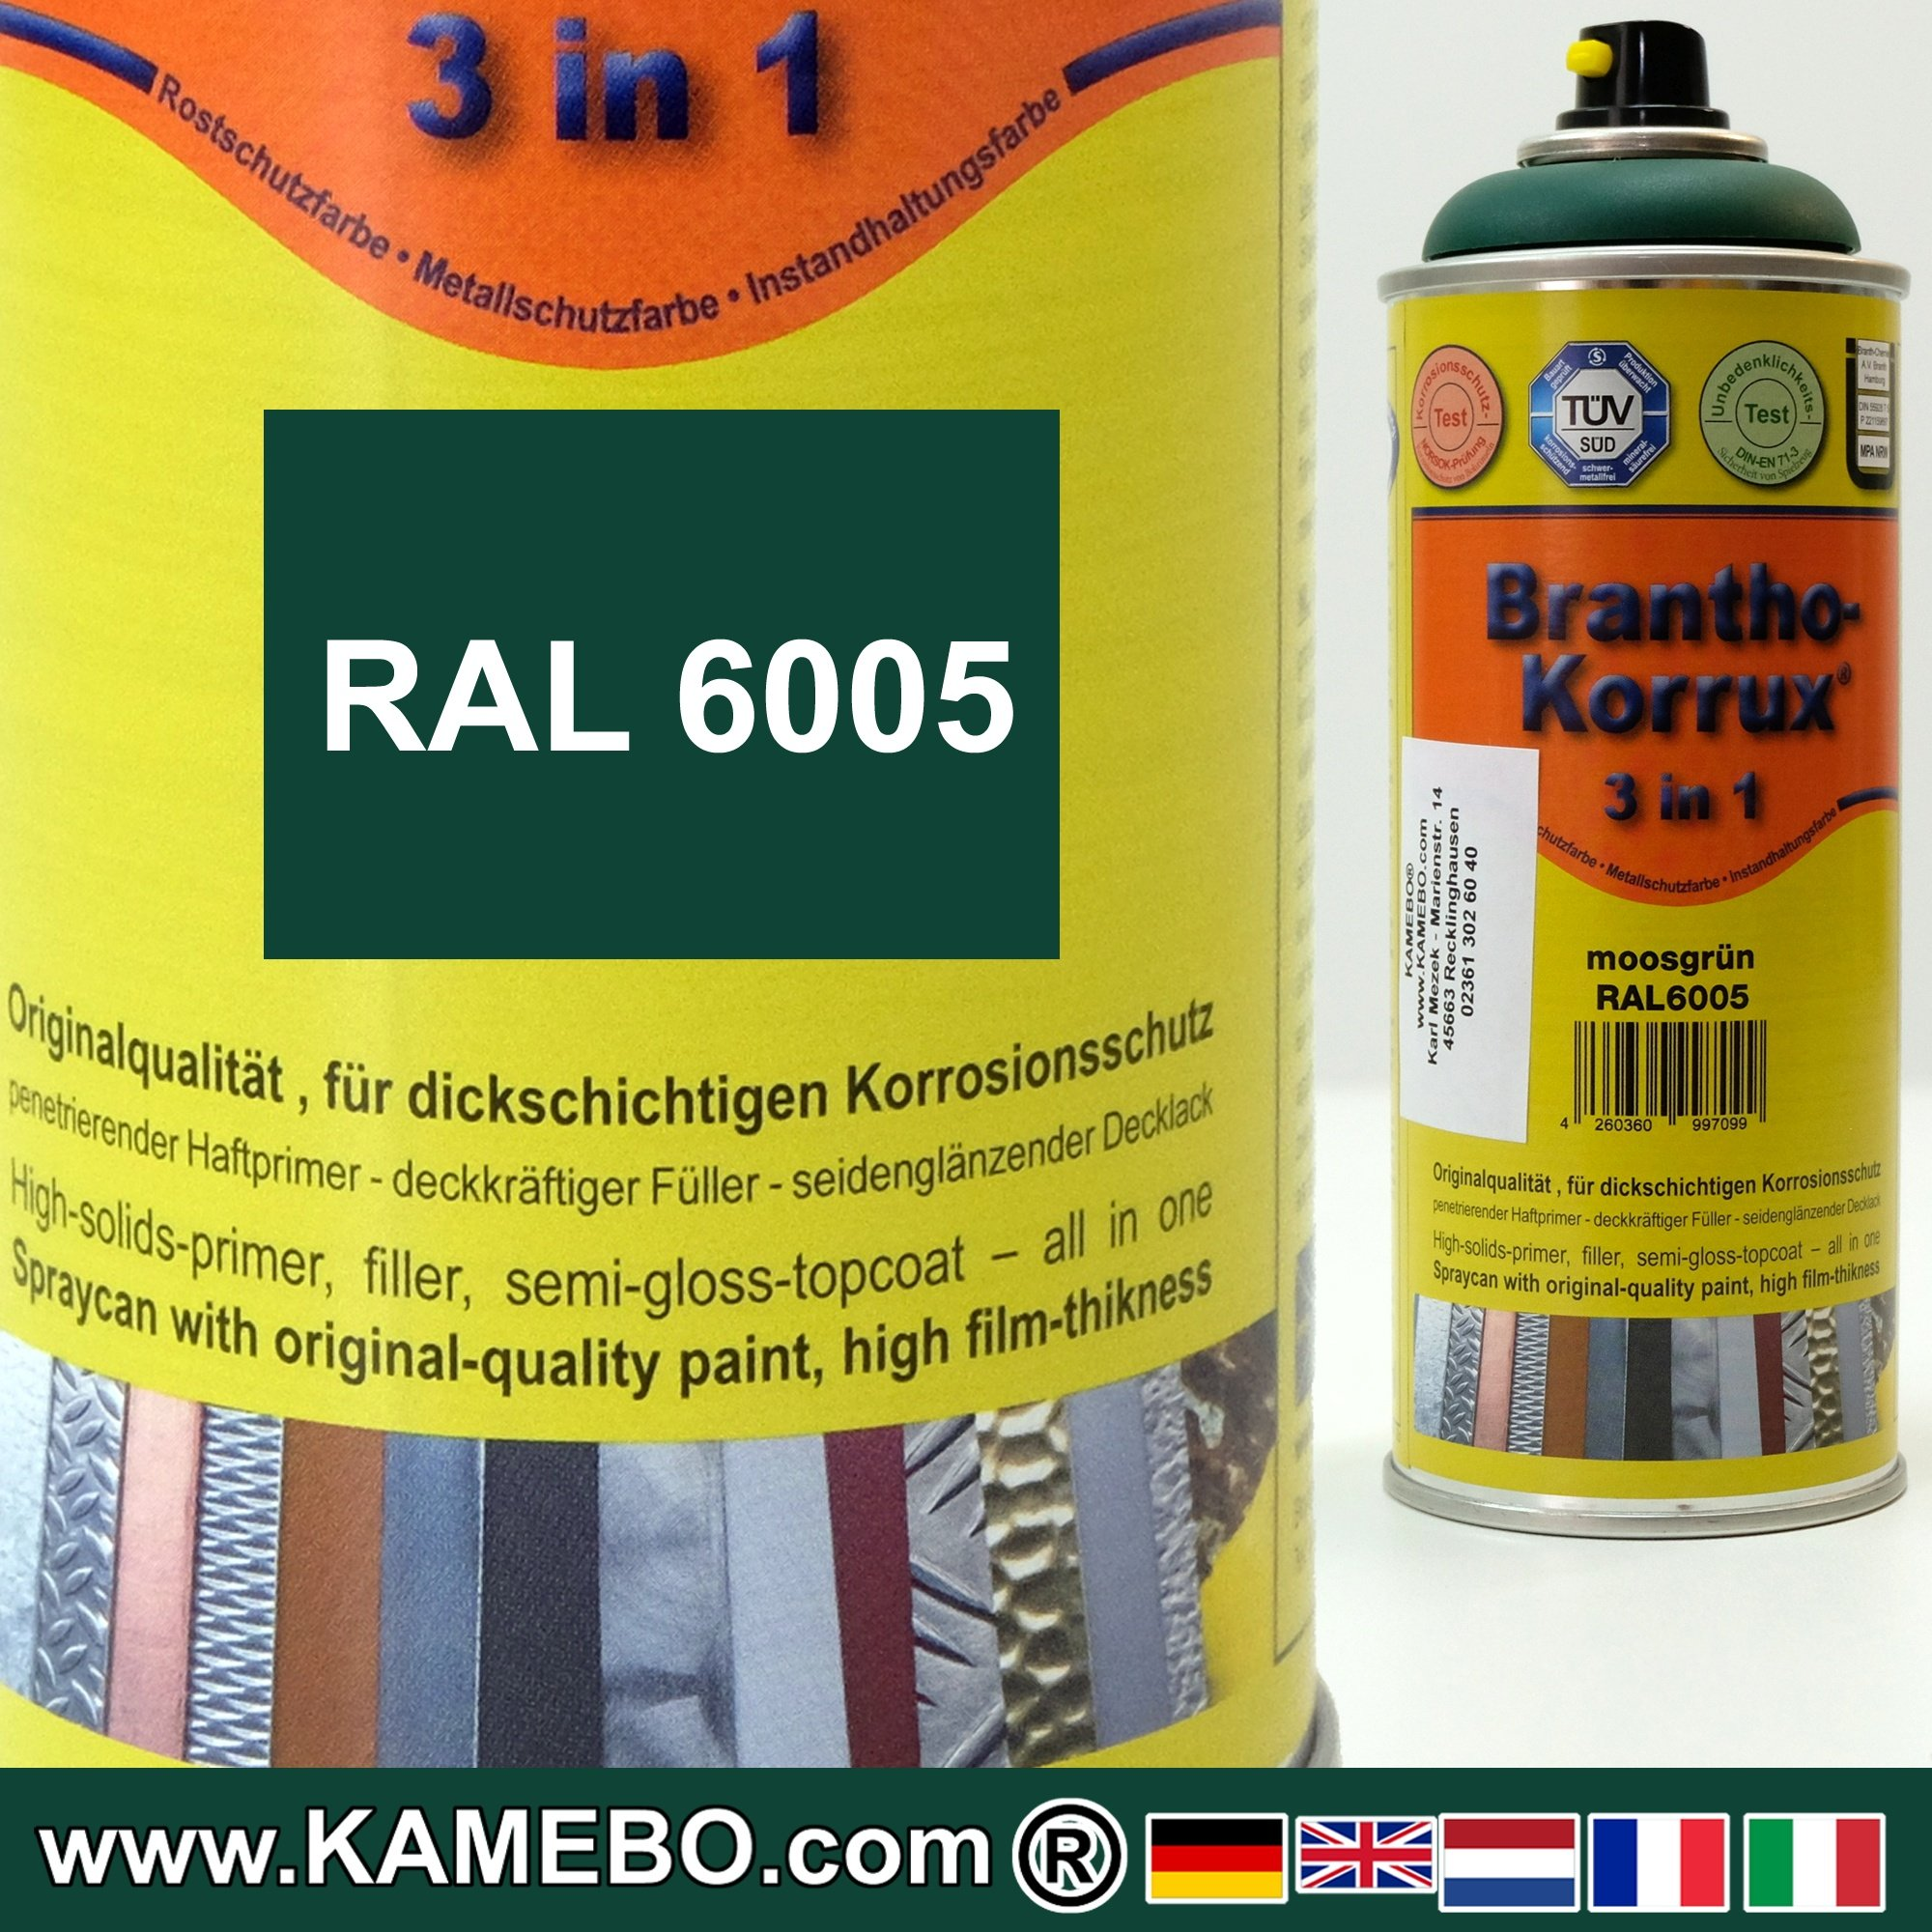 BRANTHO-KORRUX 3in1 Anti-Rust Coating RAL 6005 Spray Moss green 400 ...